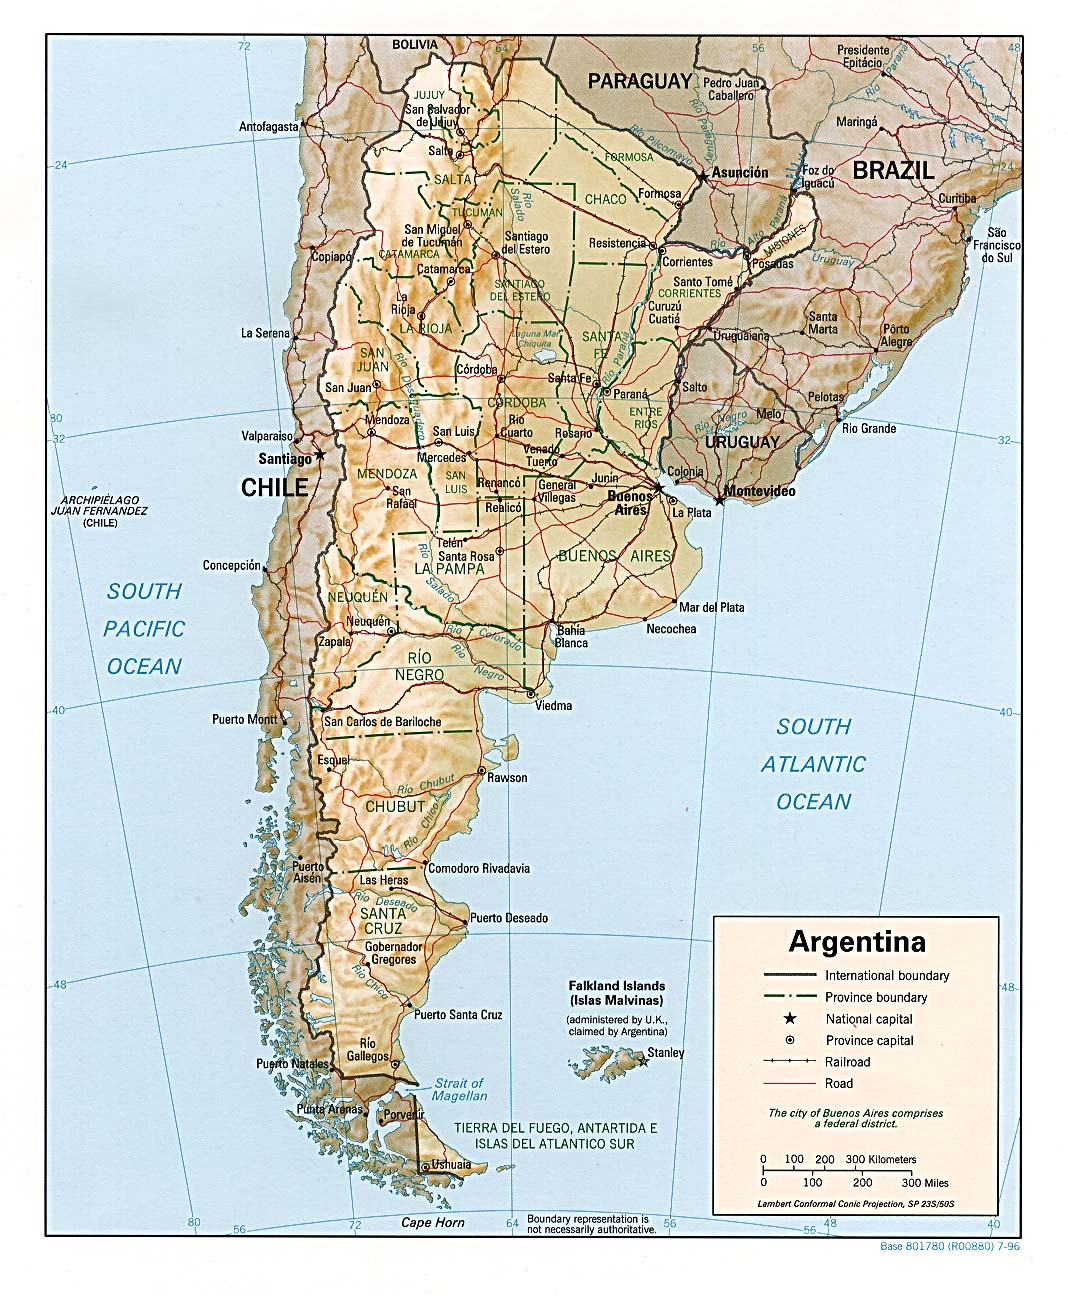 Argentina Shaded Relief Map